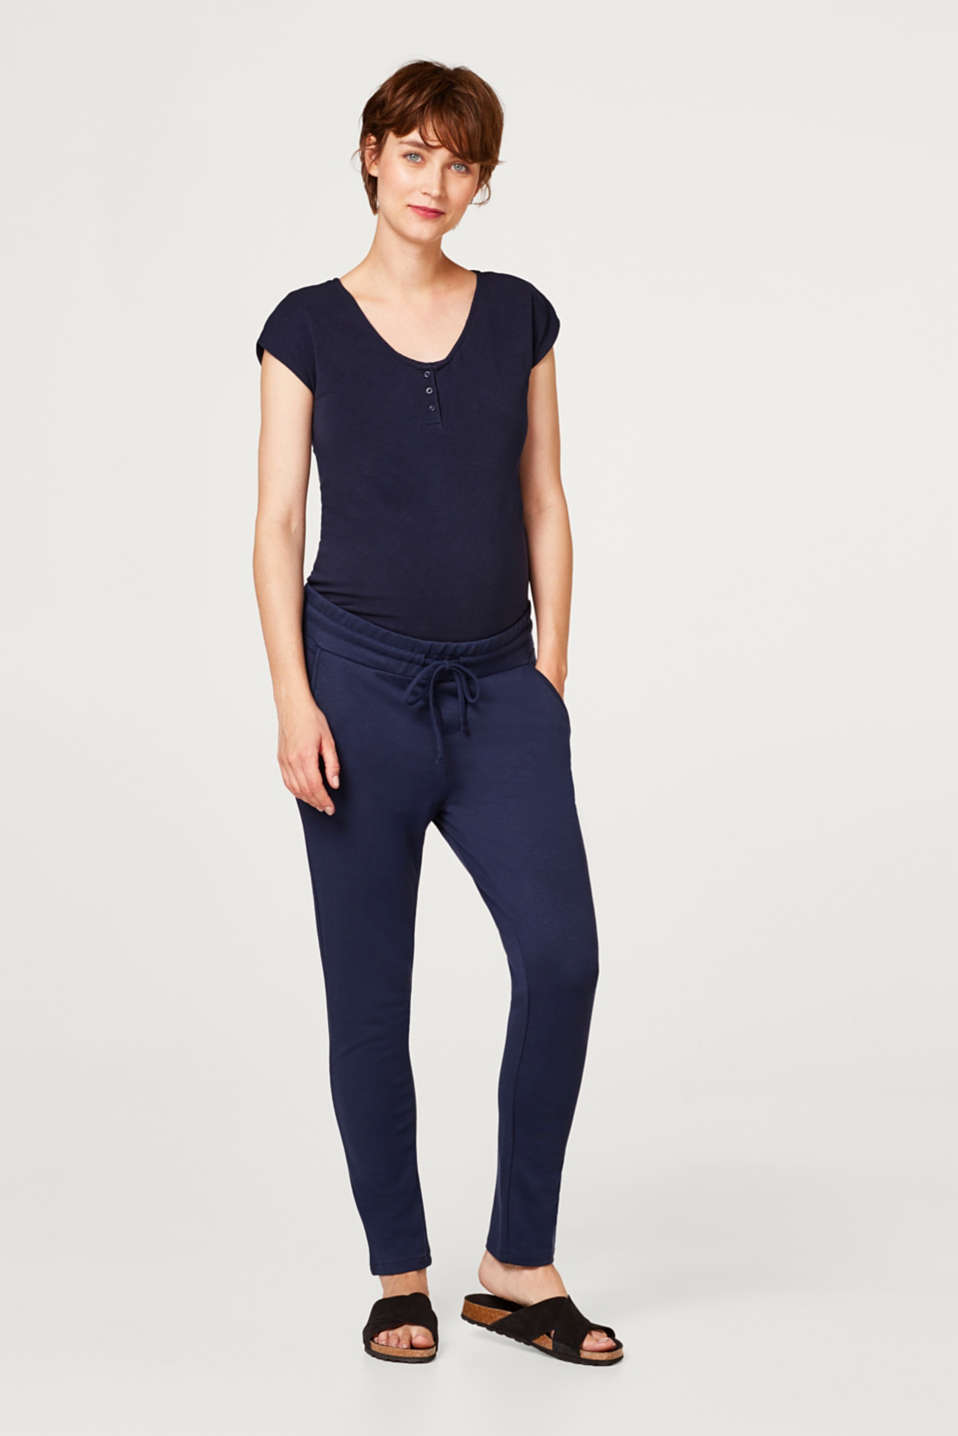 Stretch jersey trousers with an under-bump waistband